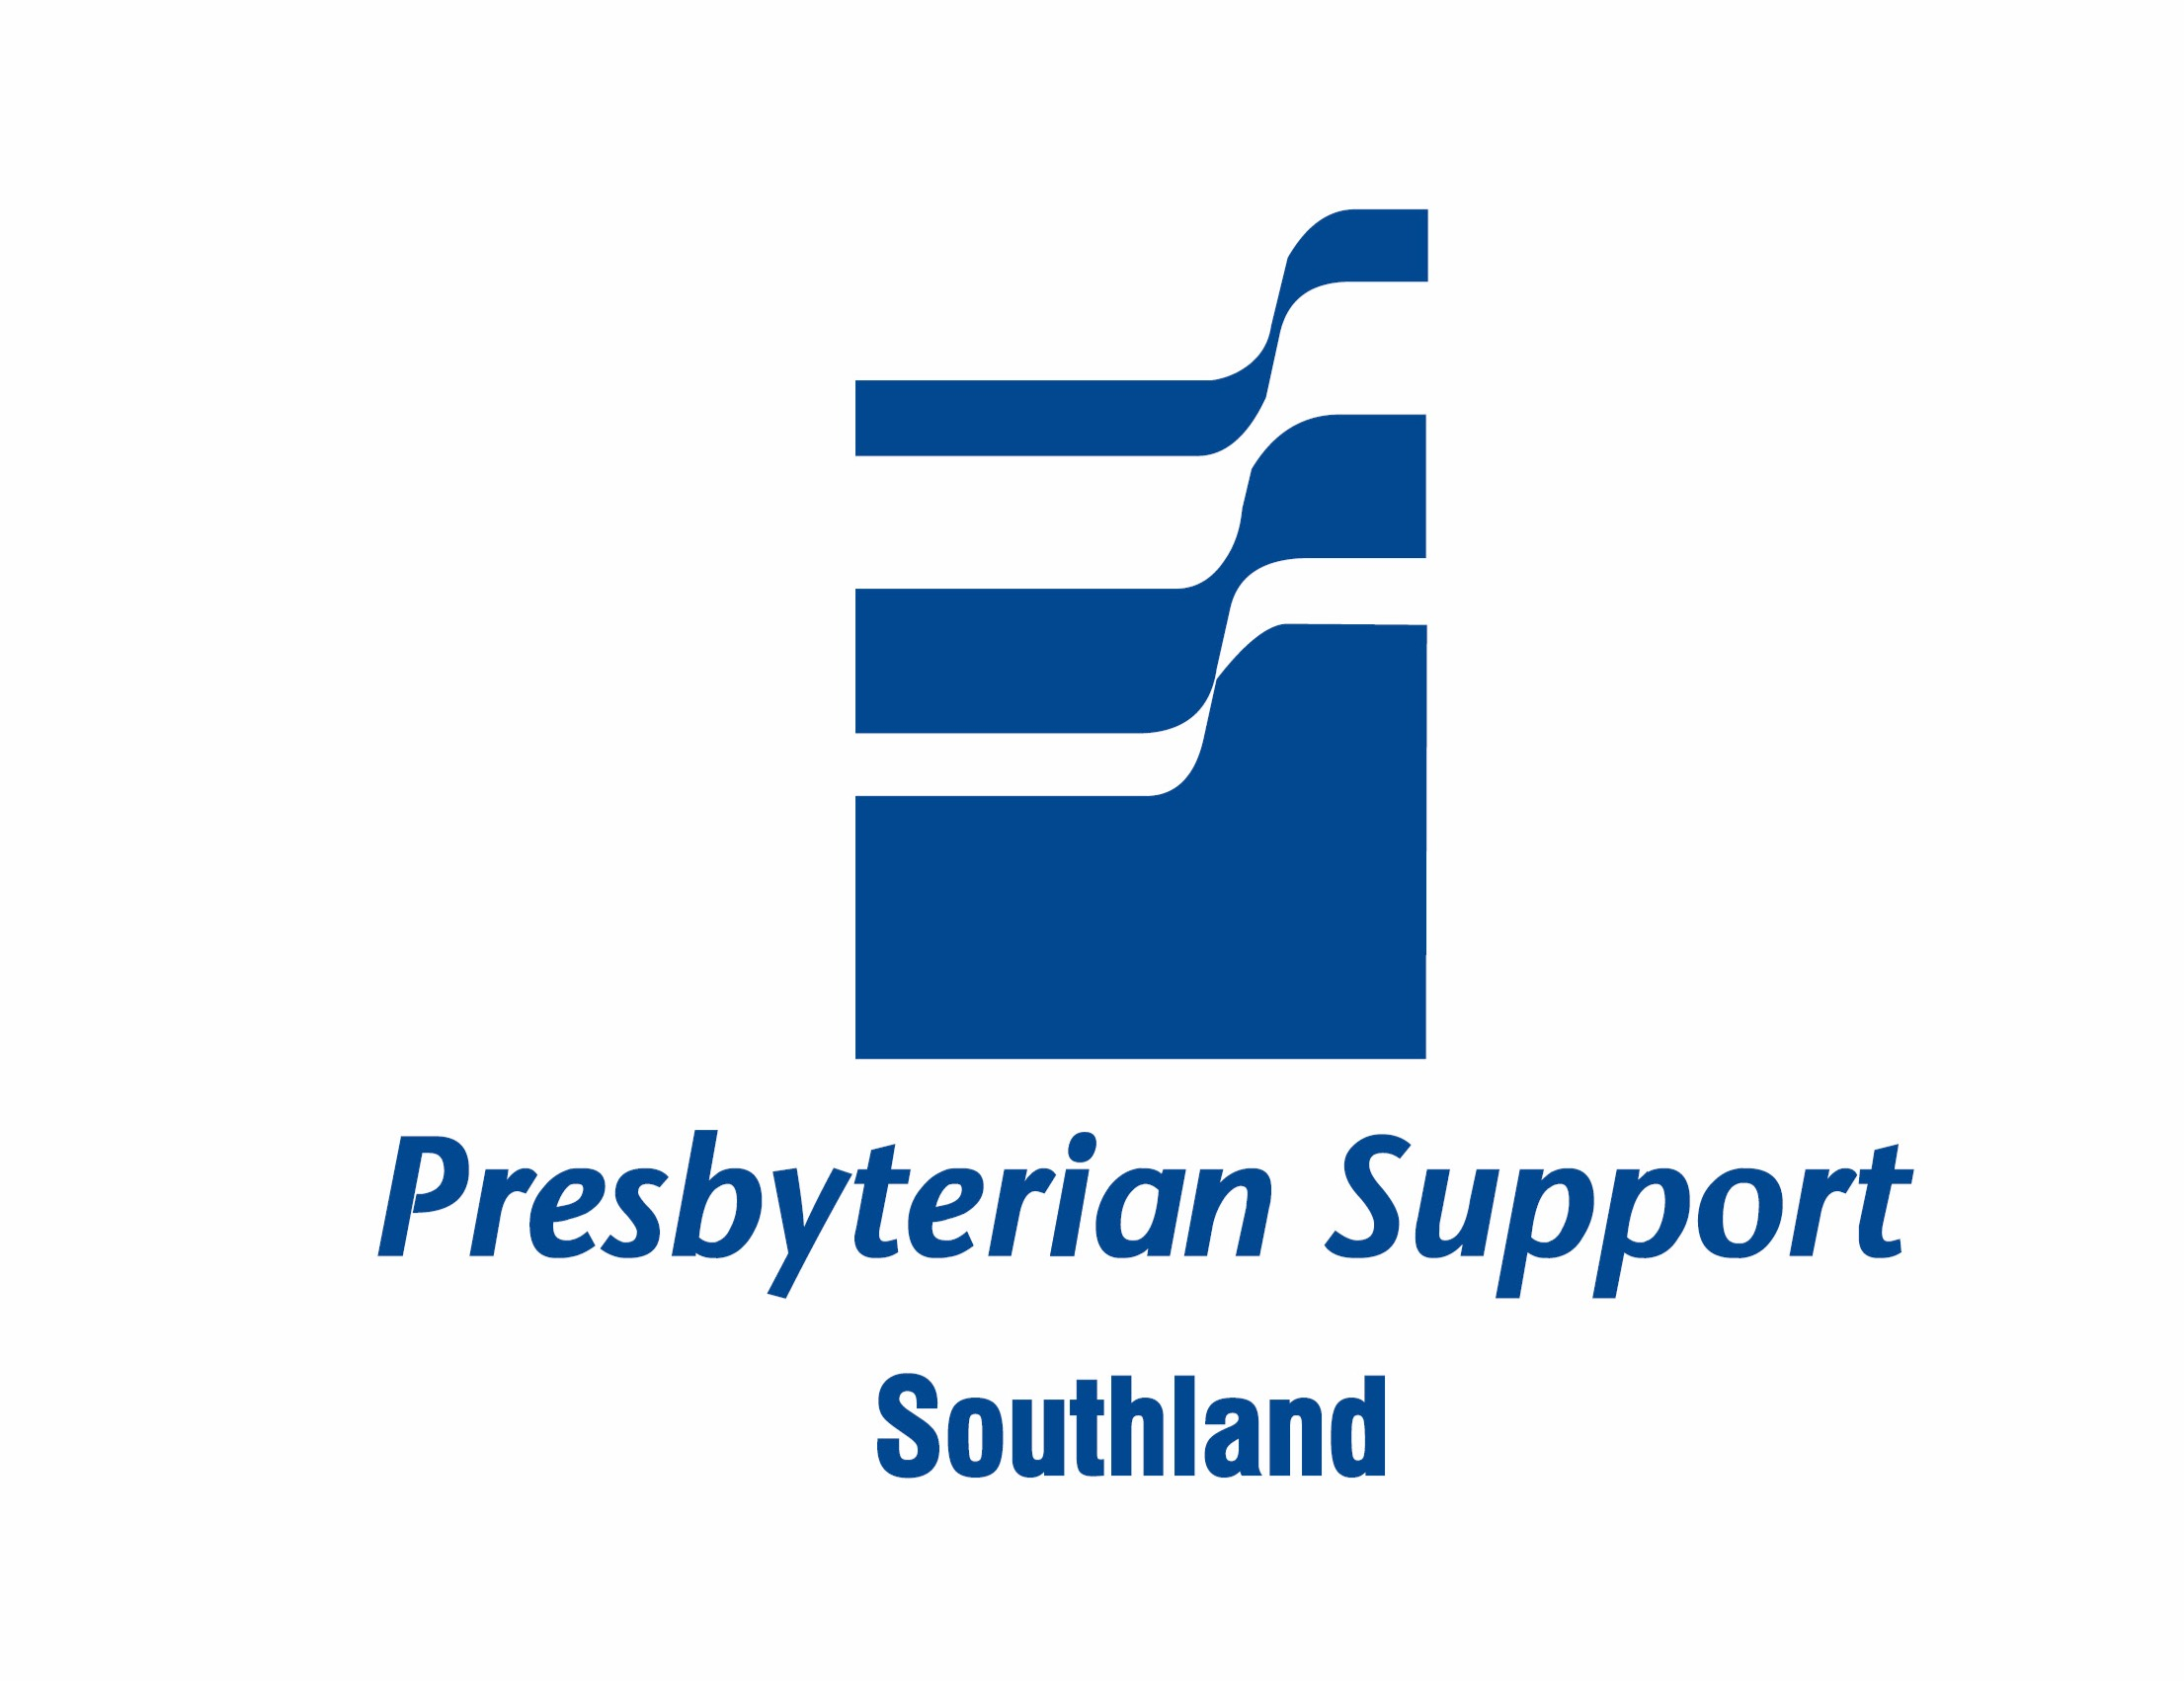 Presbyterian Support Southland